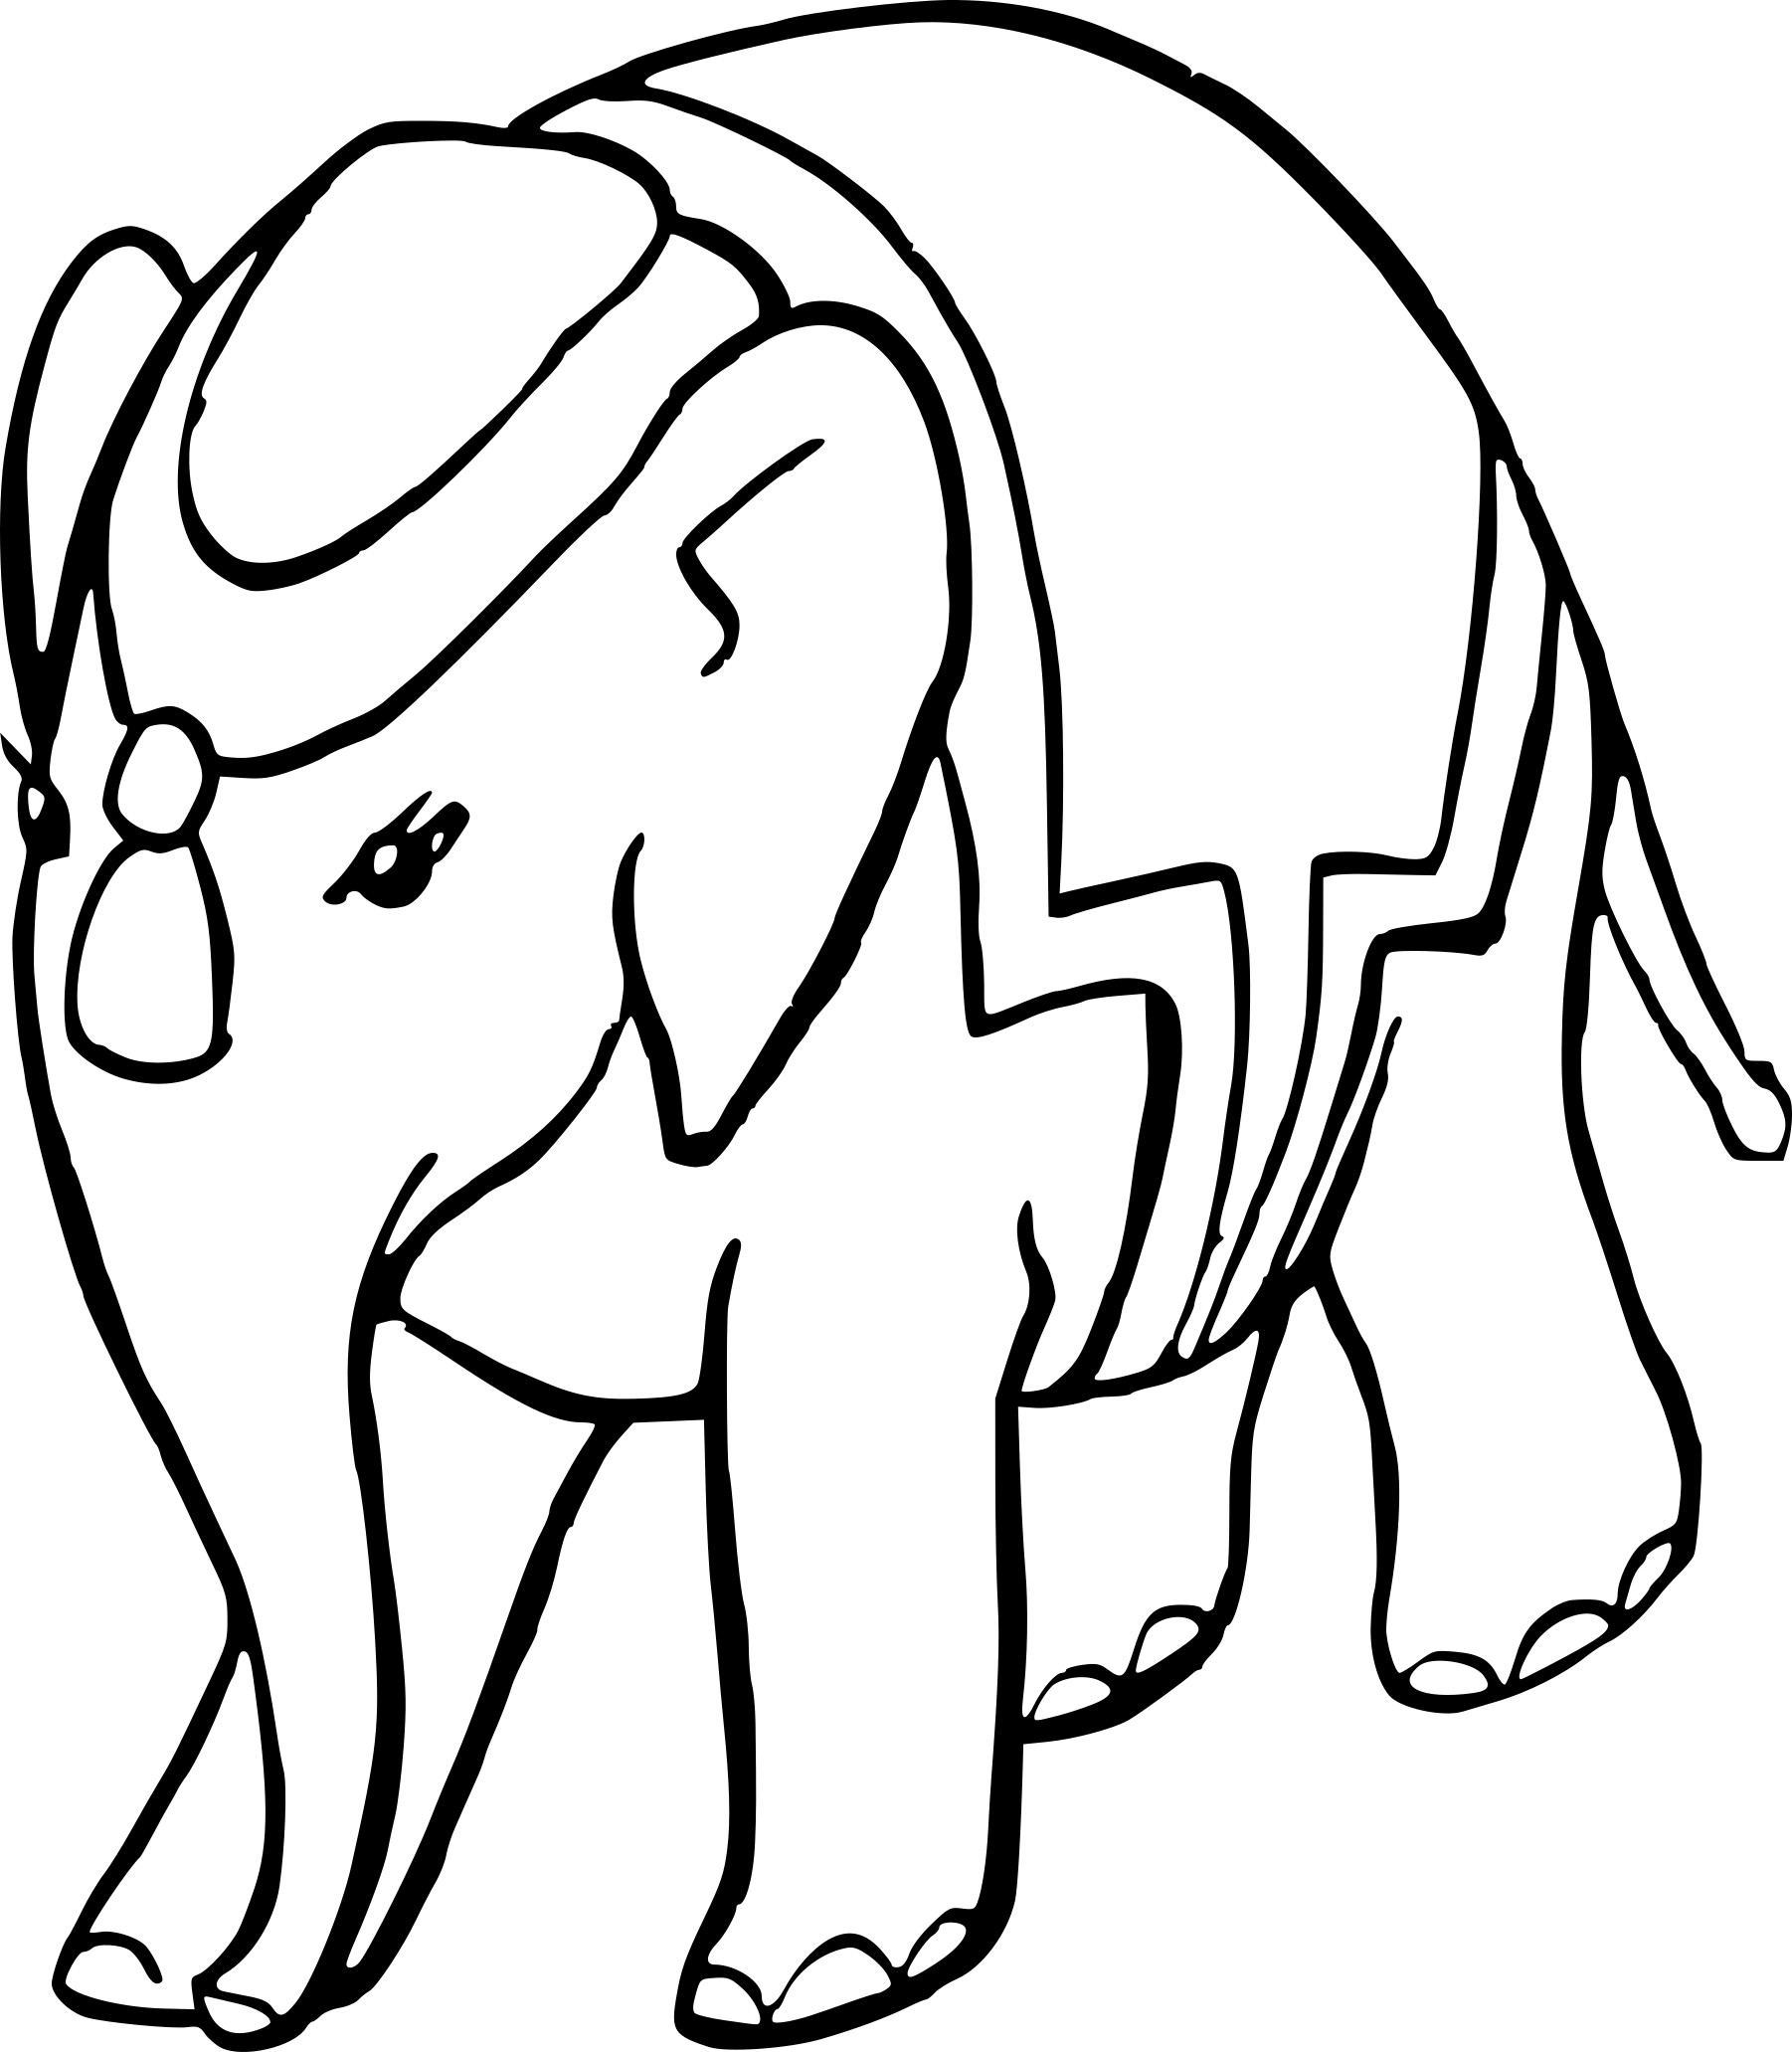 coloriage l phant inde dessin imprimer sur coloriages info. Black Bedroom Furniture Sets. Home Design Ideas